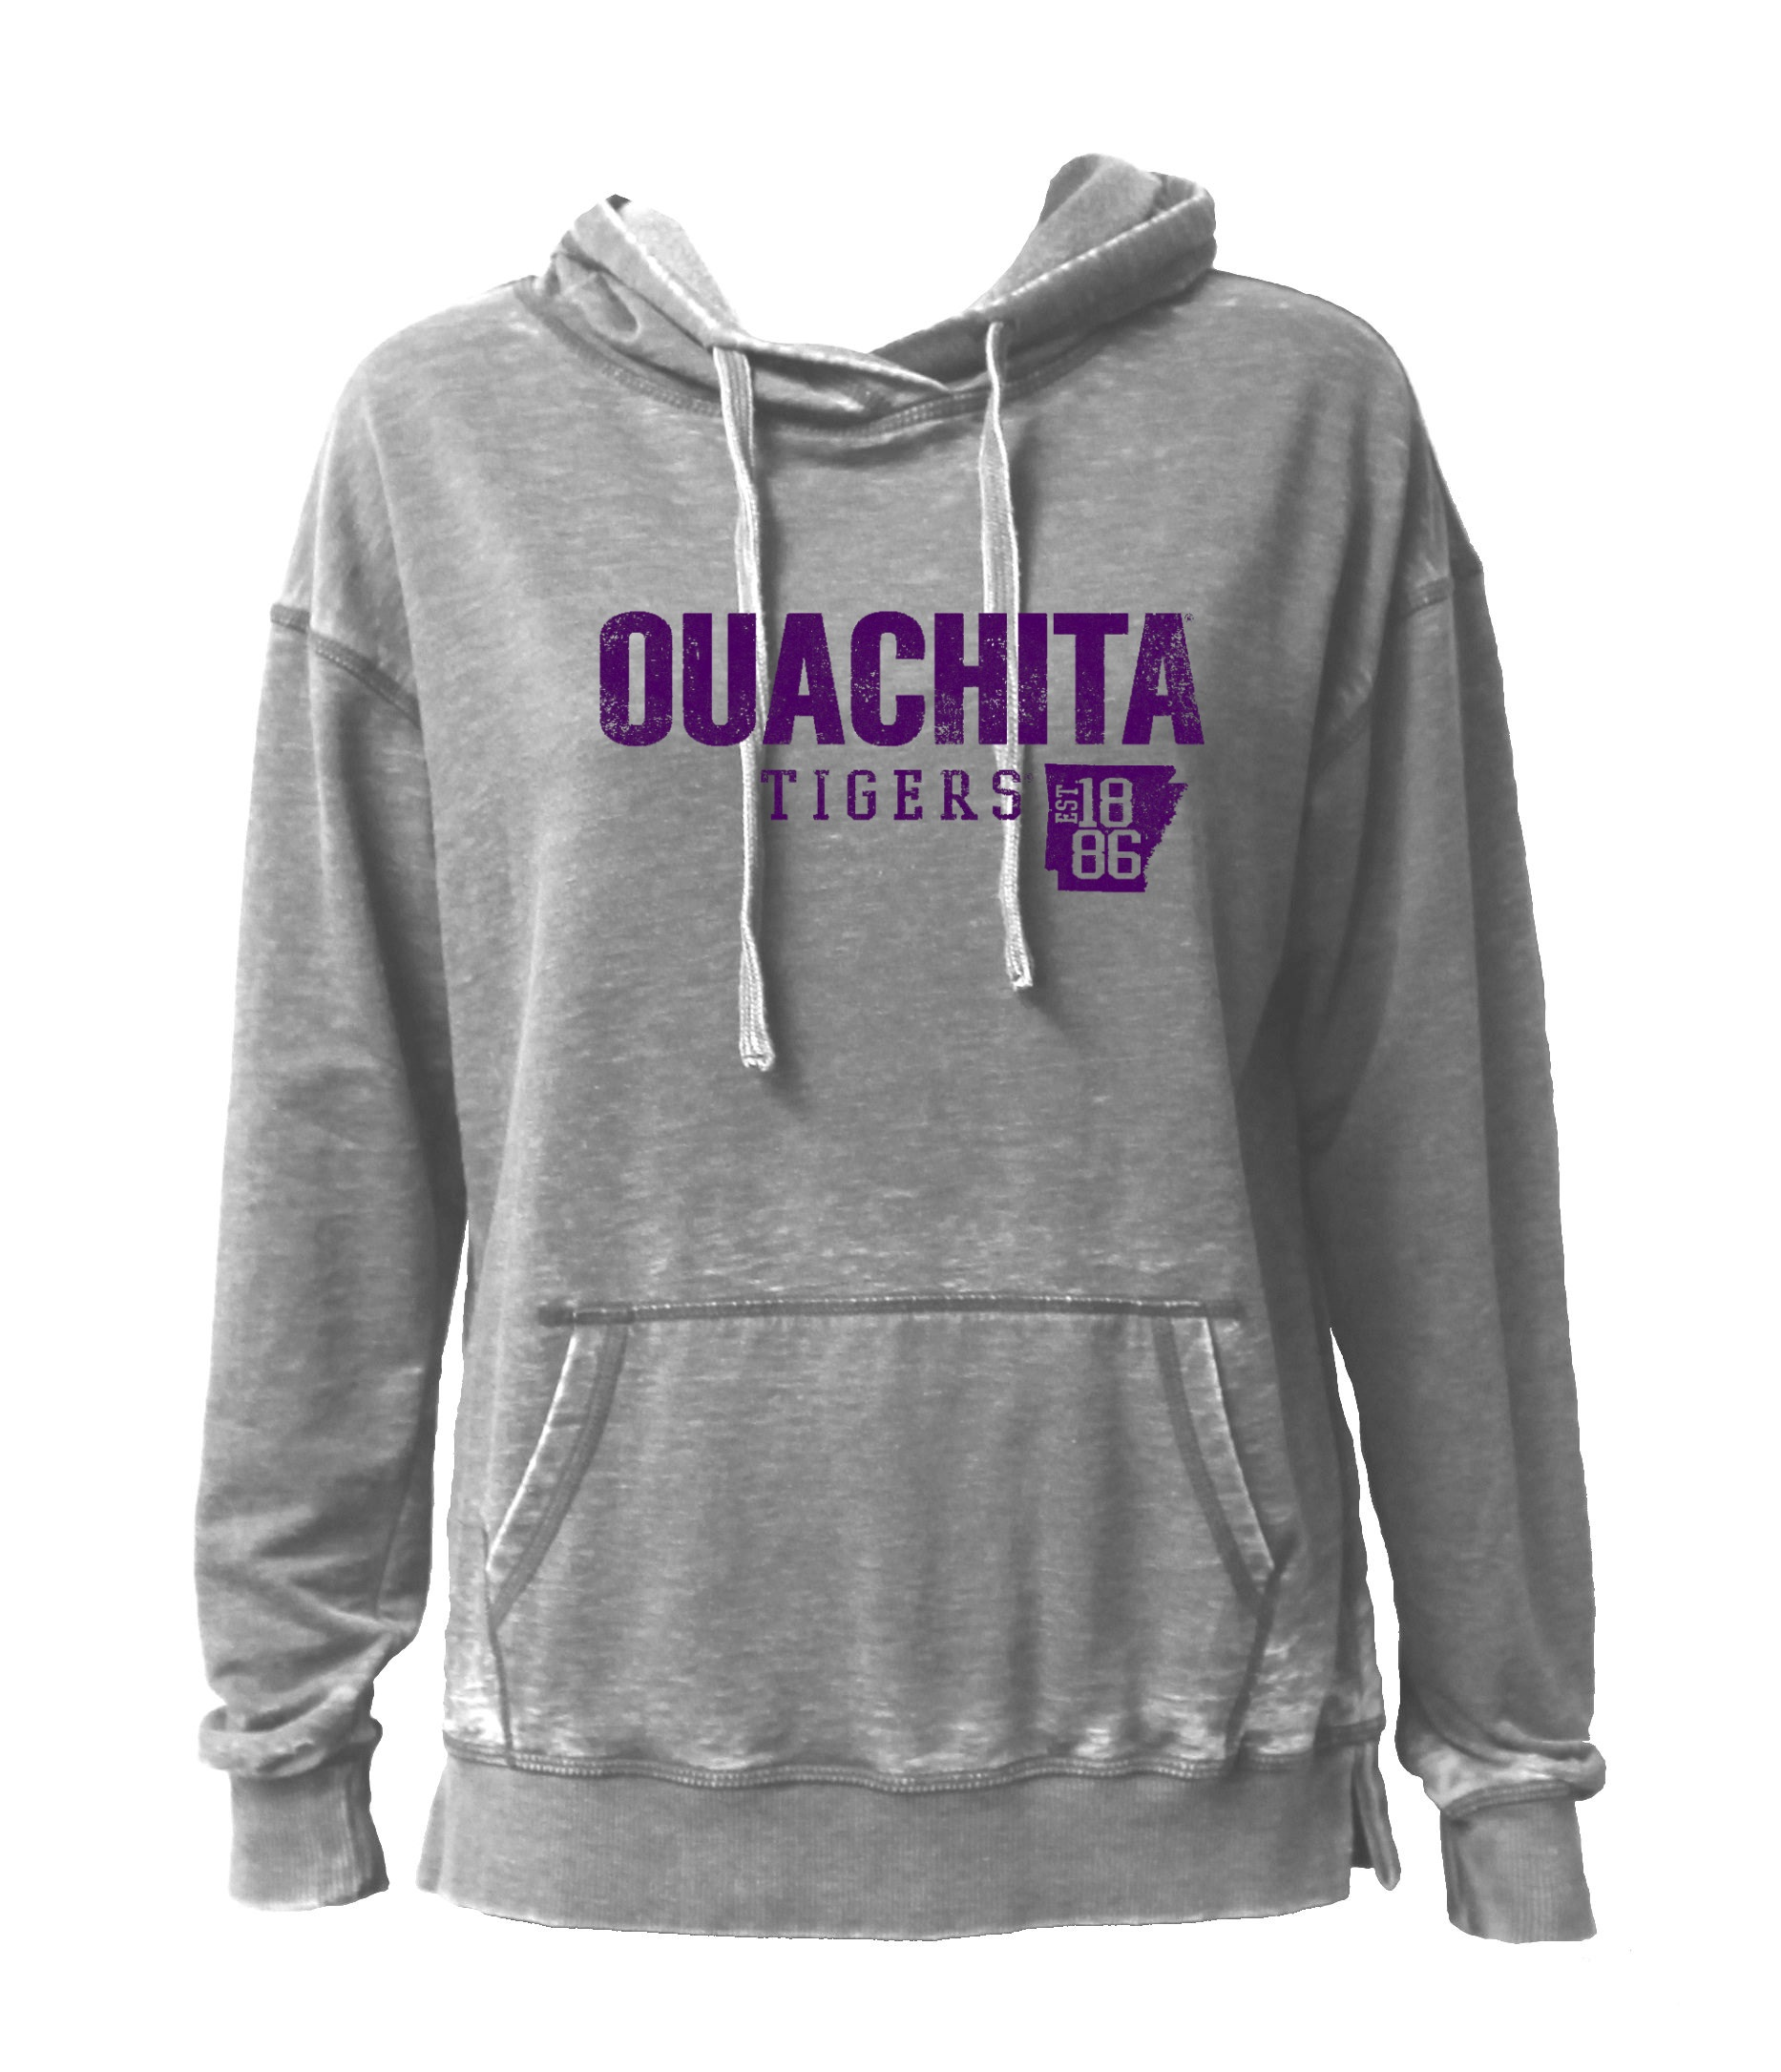 image of: OUACHITA TIGERS EST 1886 HOODED PULLOVER